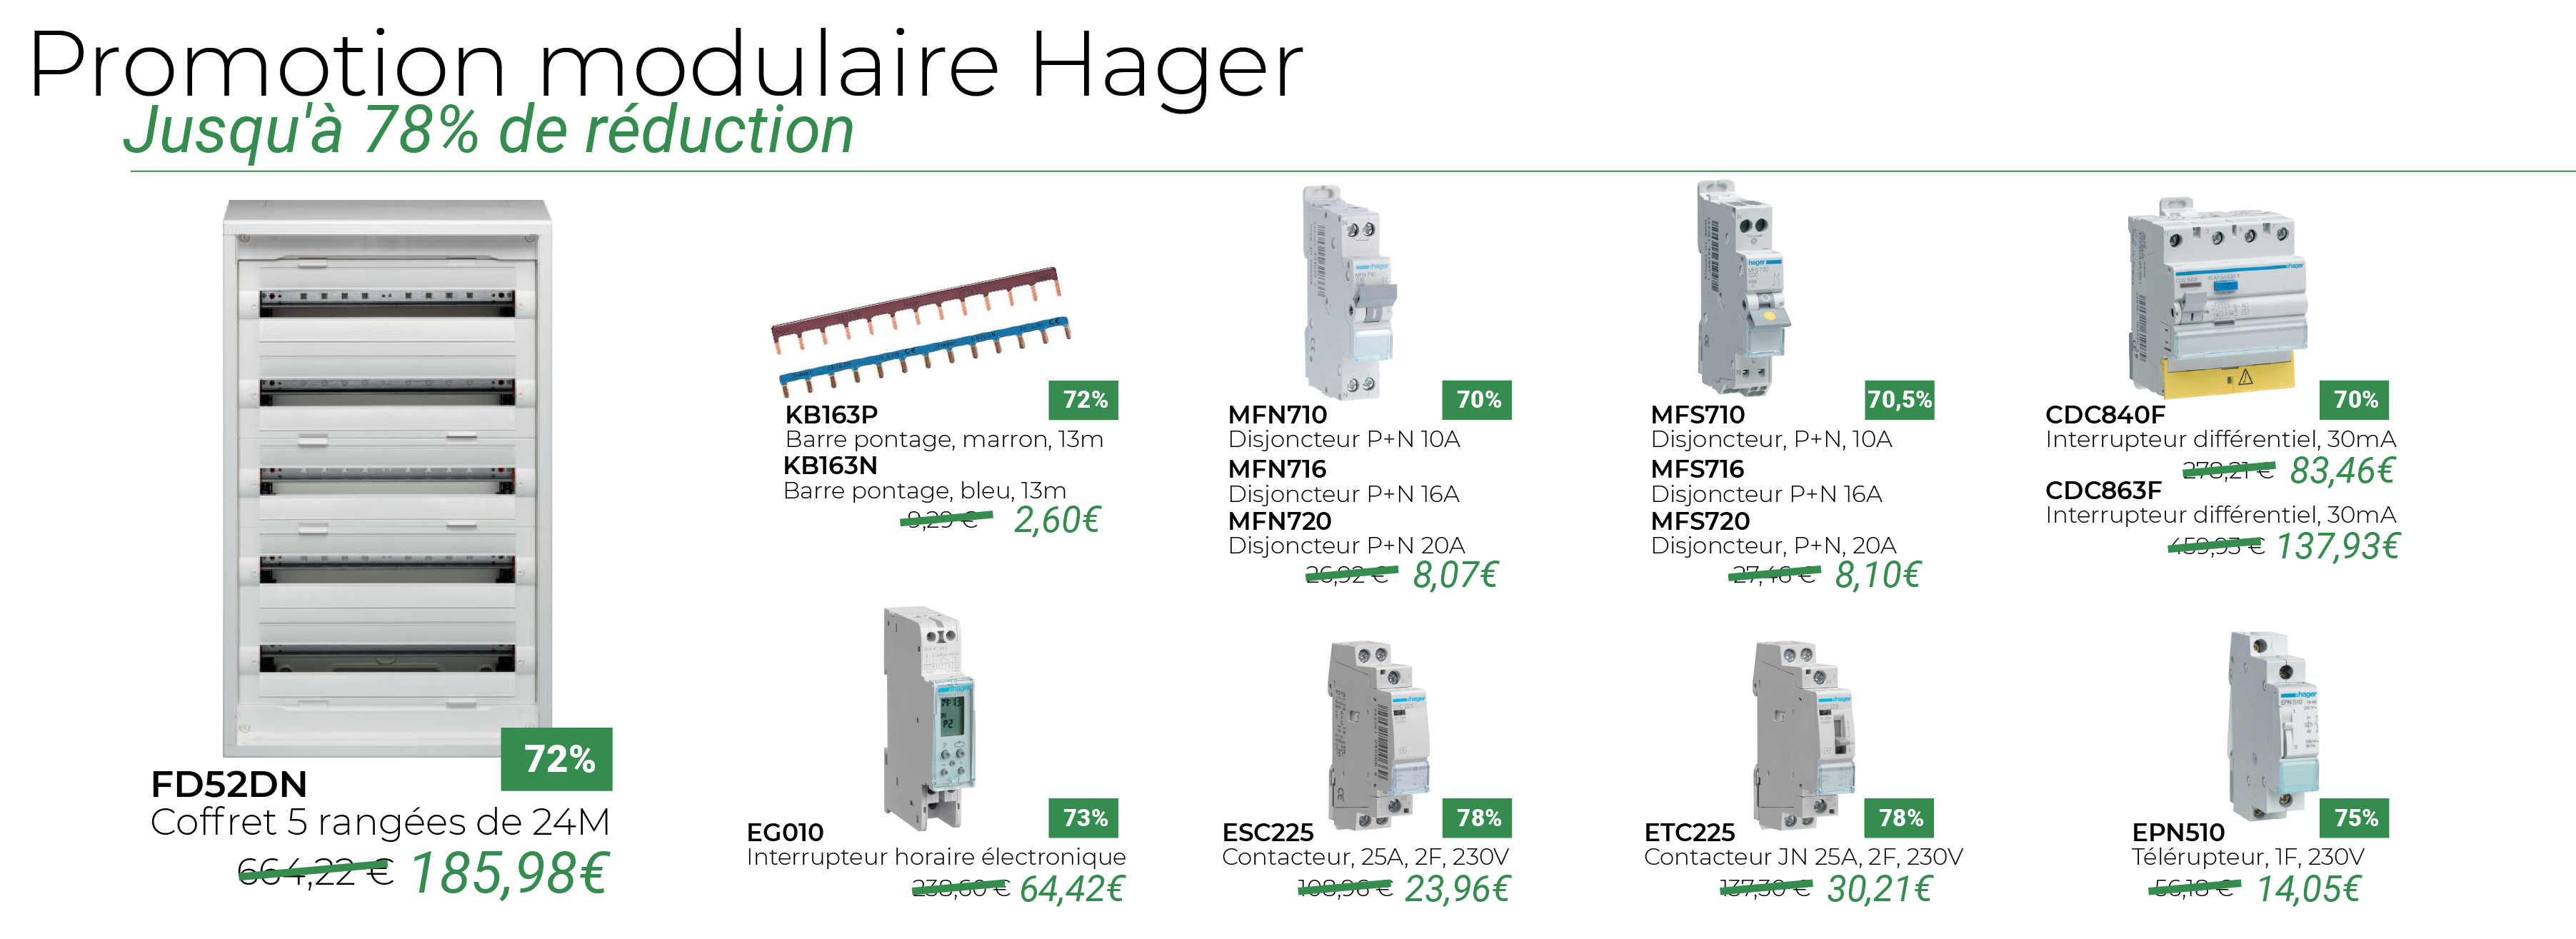 Promotion modulaire Hager